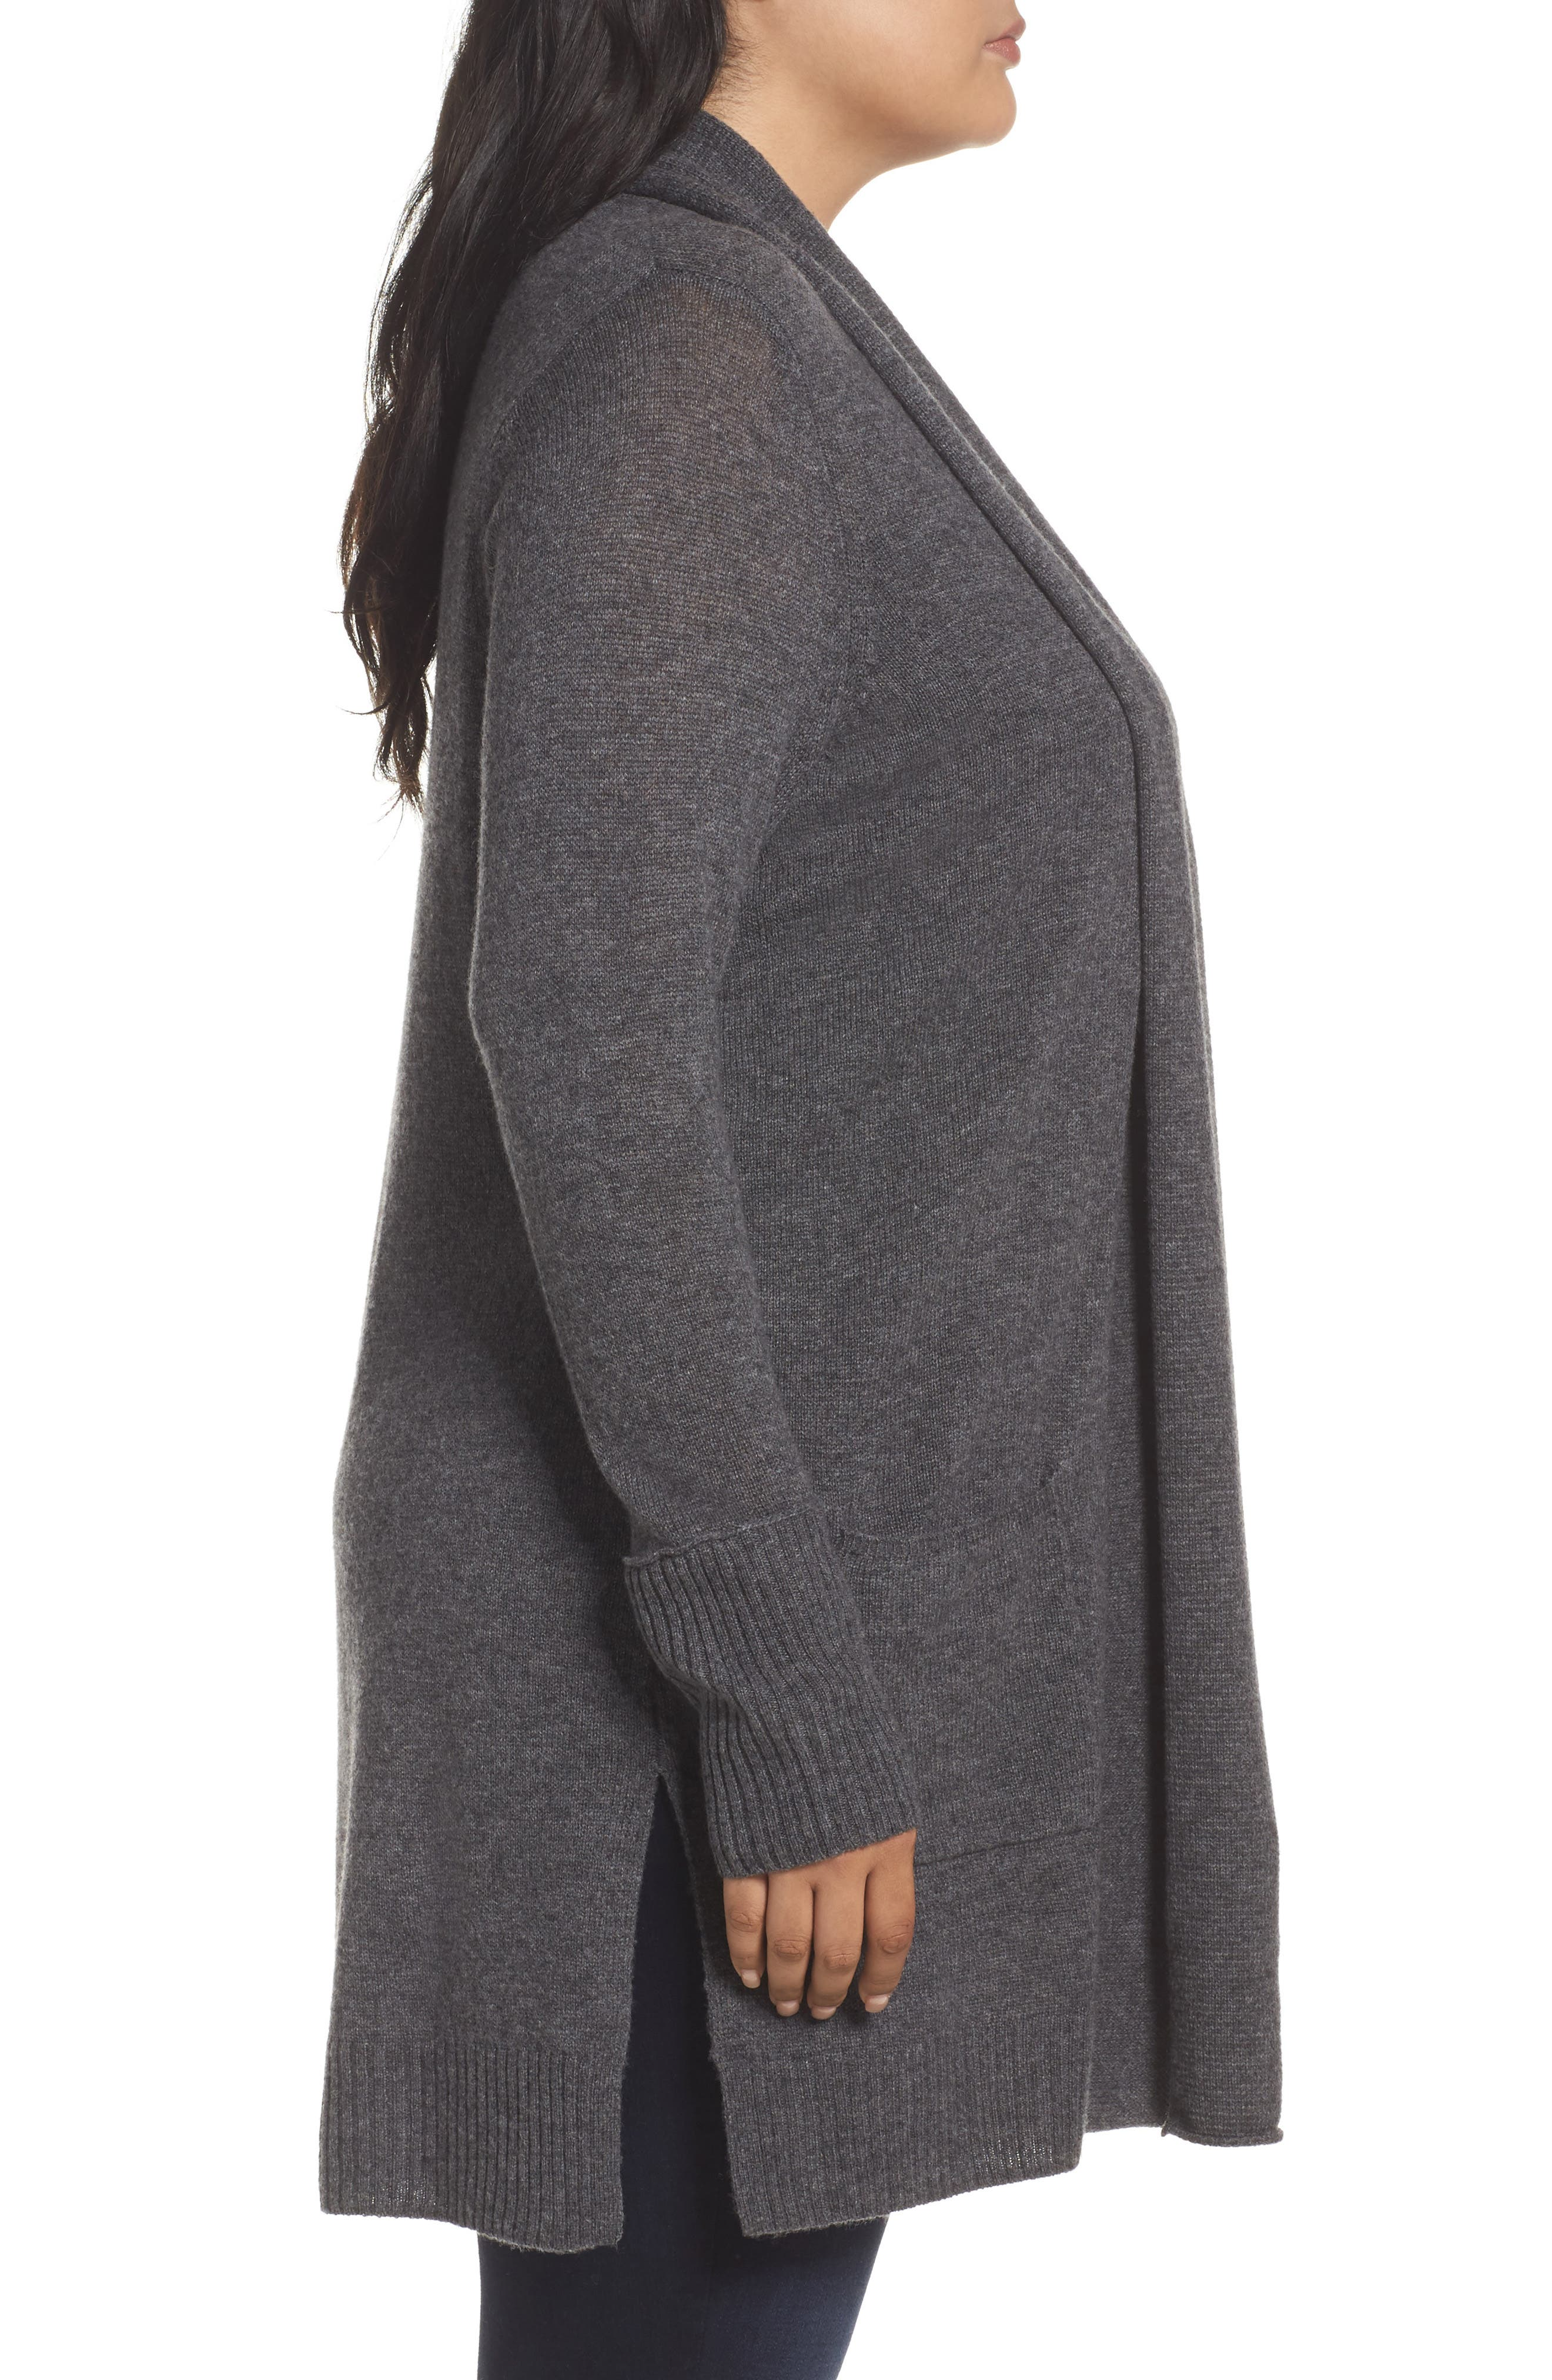 Pocket Cardigan,                             Alternate thumbnail 3, color,                             Grey Charcoal Heather